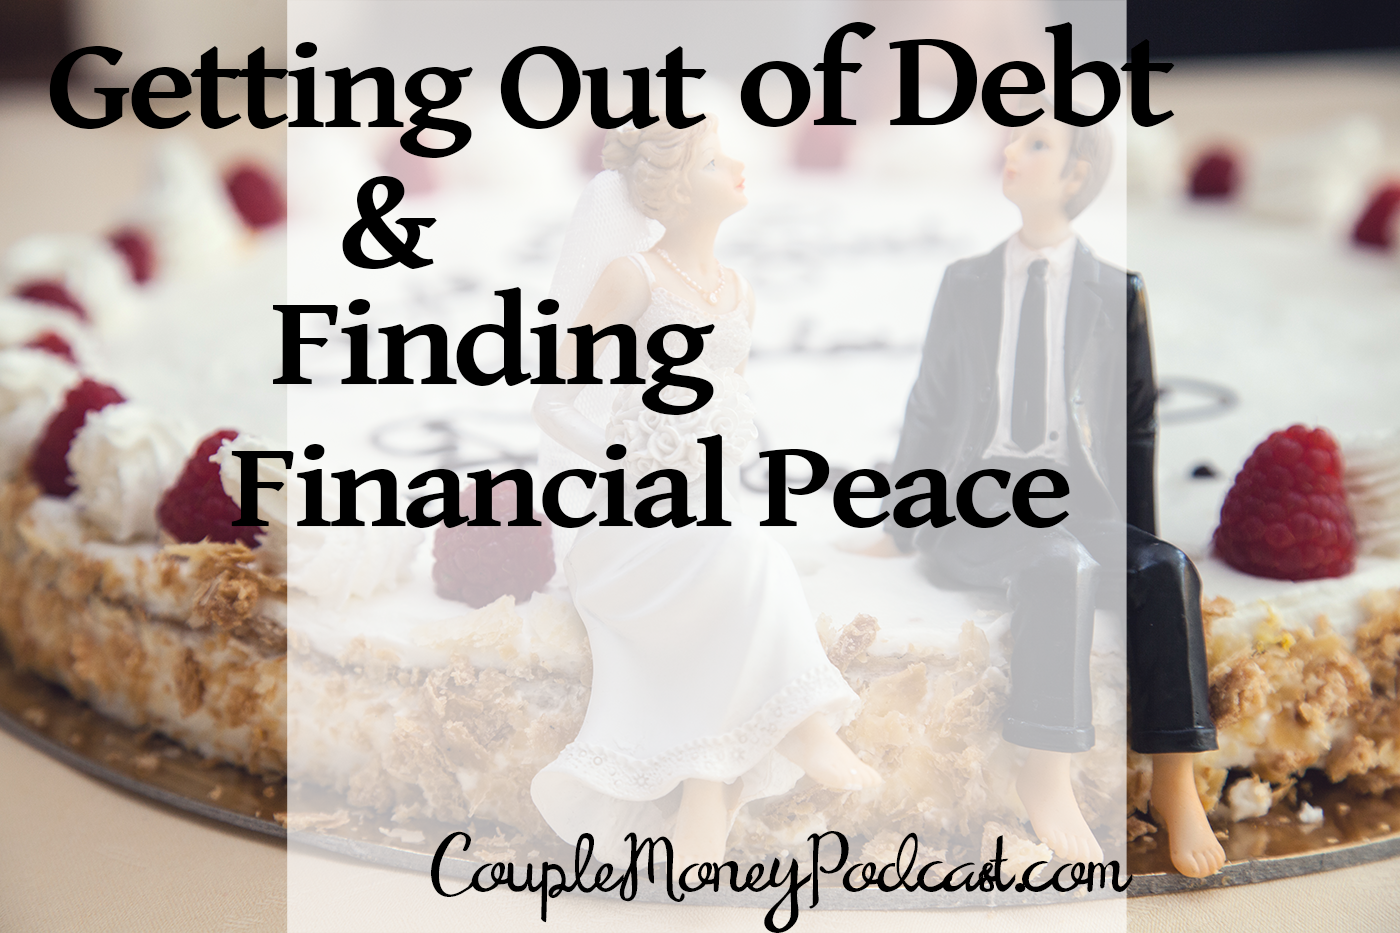 Learn how you two have more control over your money and how some families have used Financial Peace University as a path to financial freedom. Chris fromMoney Peach, a FPU coordinator, is our special guest.